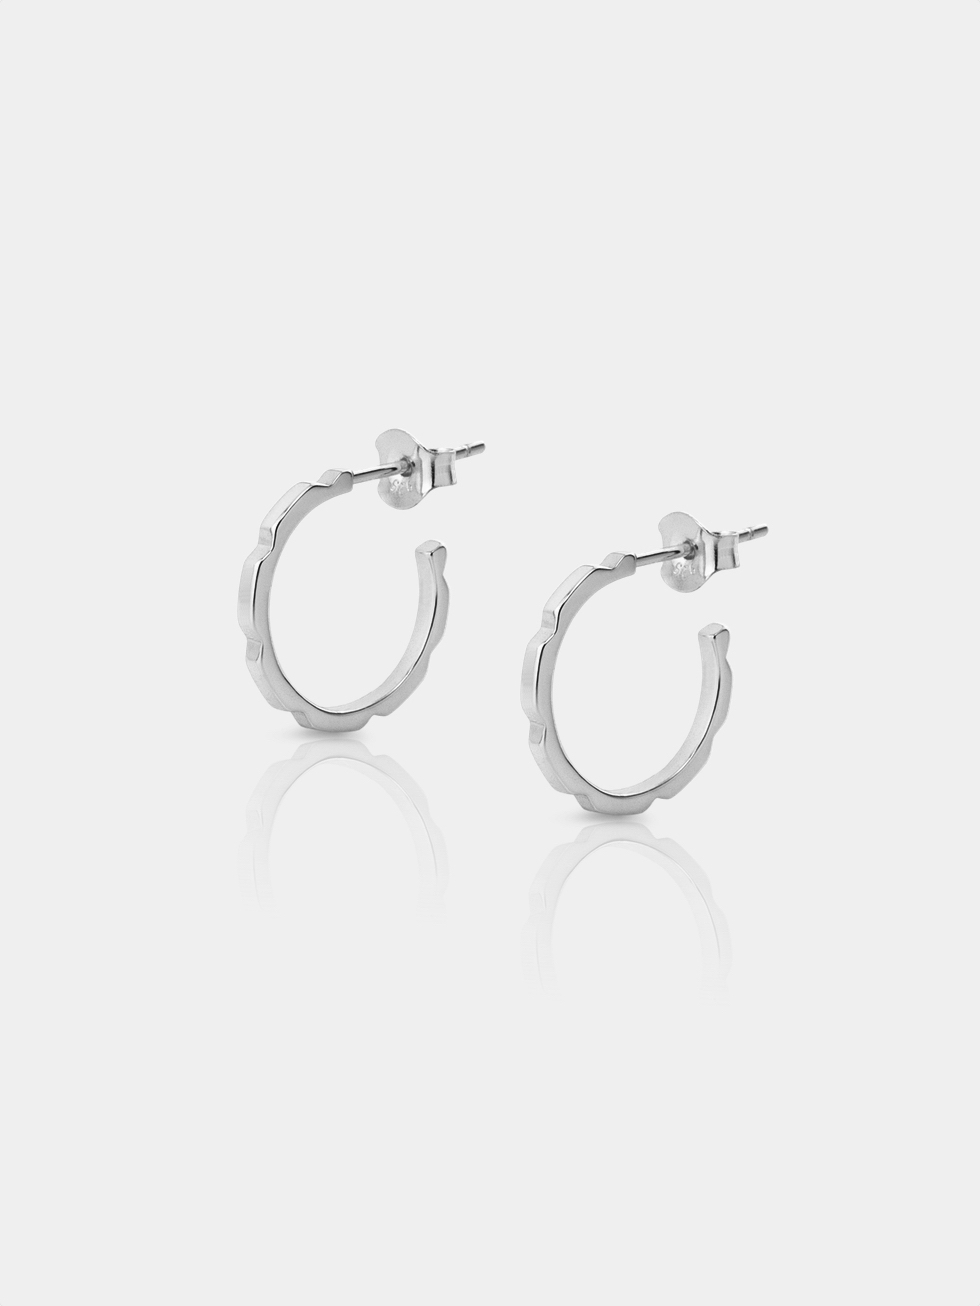 CUBIK silver earrings